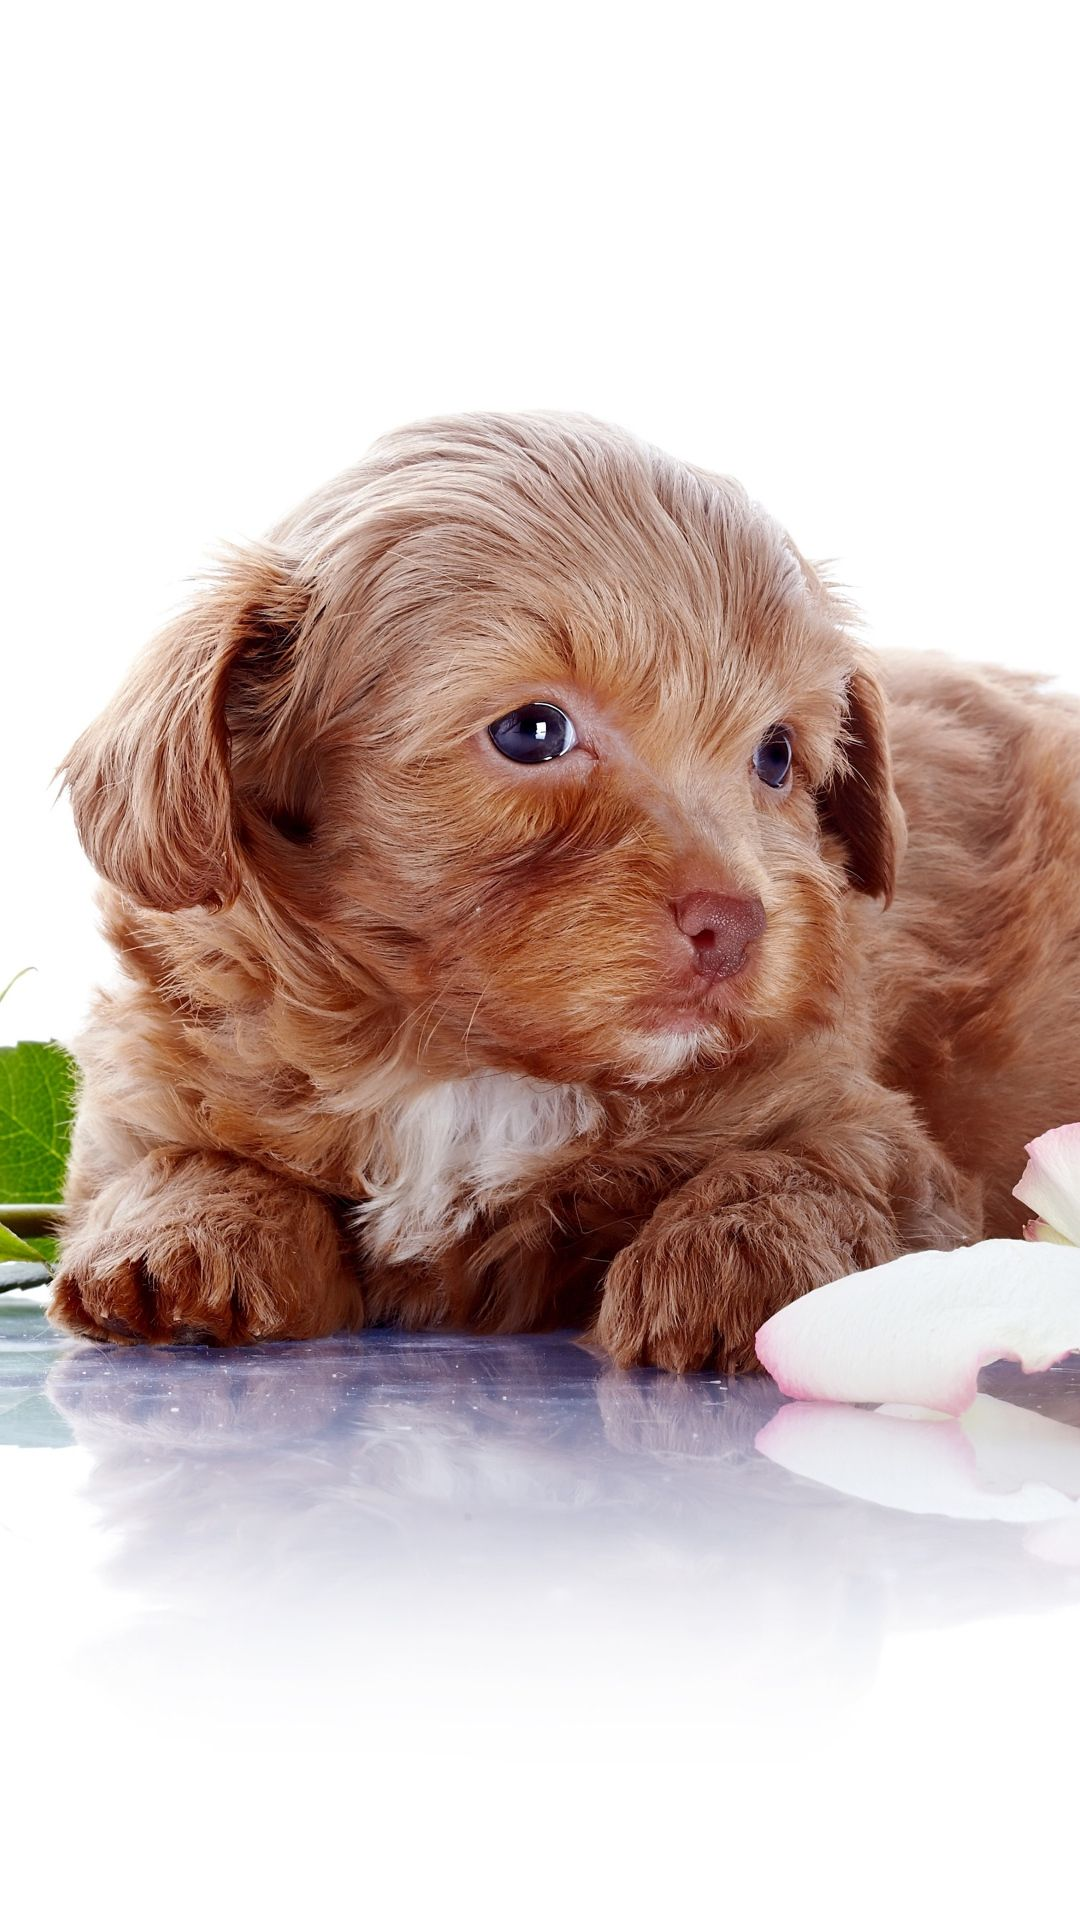 Puppy Dog Crawling On Ground iPhone 6 plus wallpaper